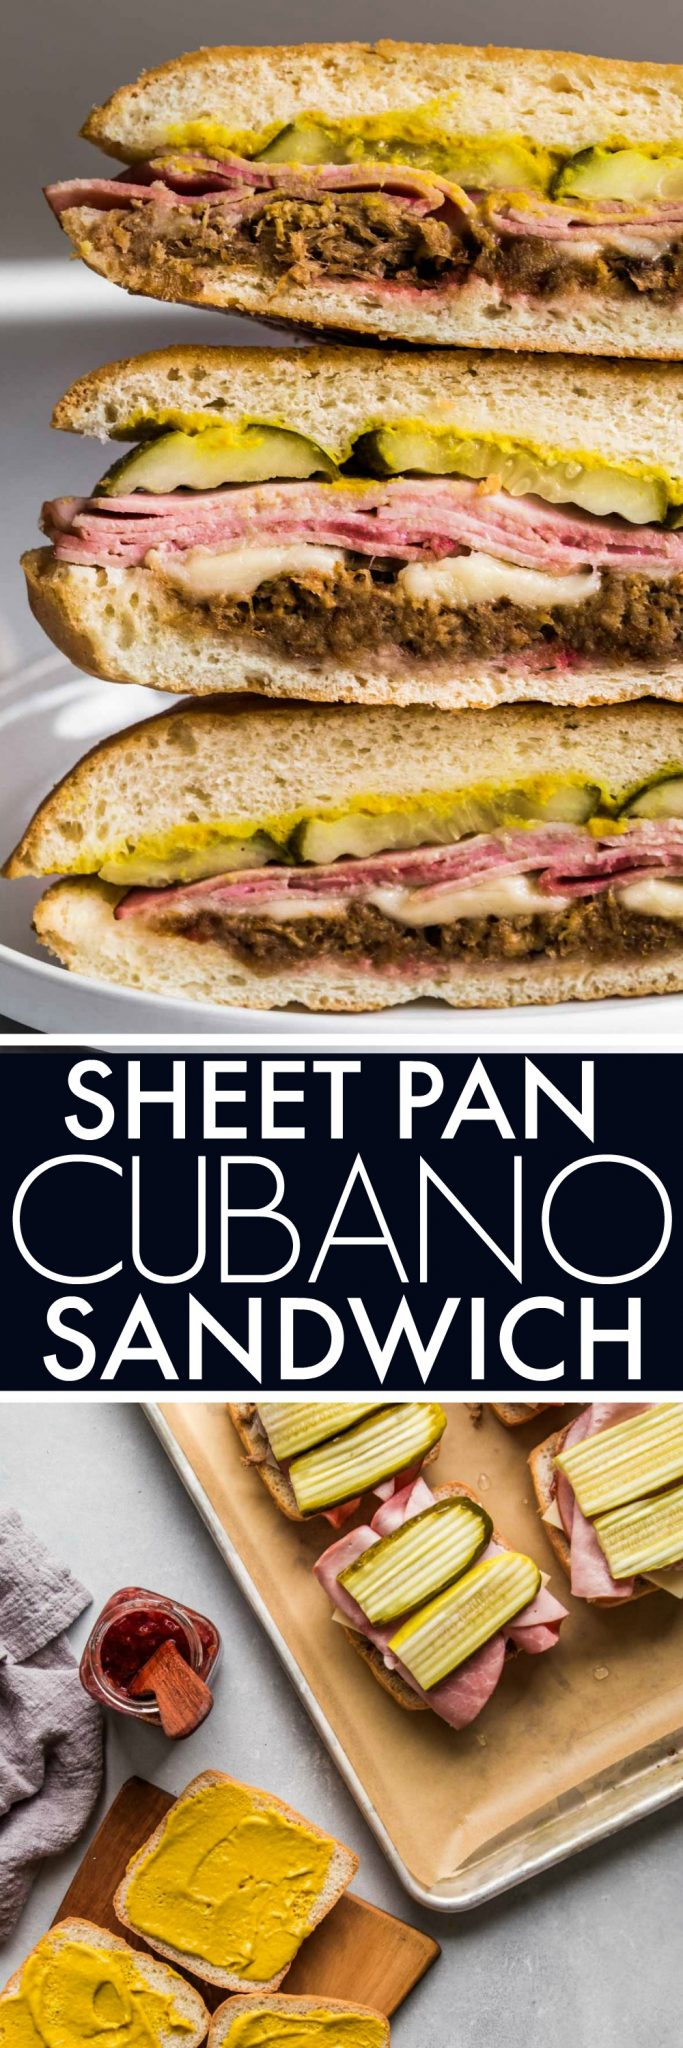 This Sheet Pan Cubano Sandwich with Cherry-Rhubarb Jam is the ultimate cubano sandwich recipe. Thinly sliced ham, cuban marinated pork and gruyere cheese are layered with pickles, mustard and a tart cherry-rhubarb jam and then baked on a weighted sheet pan, resulting in a crispy, delicious sandwich. #sandwich #cubansandwich #cubano #cubanosandwich